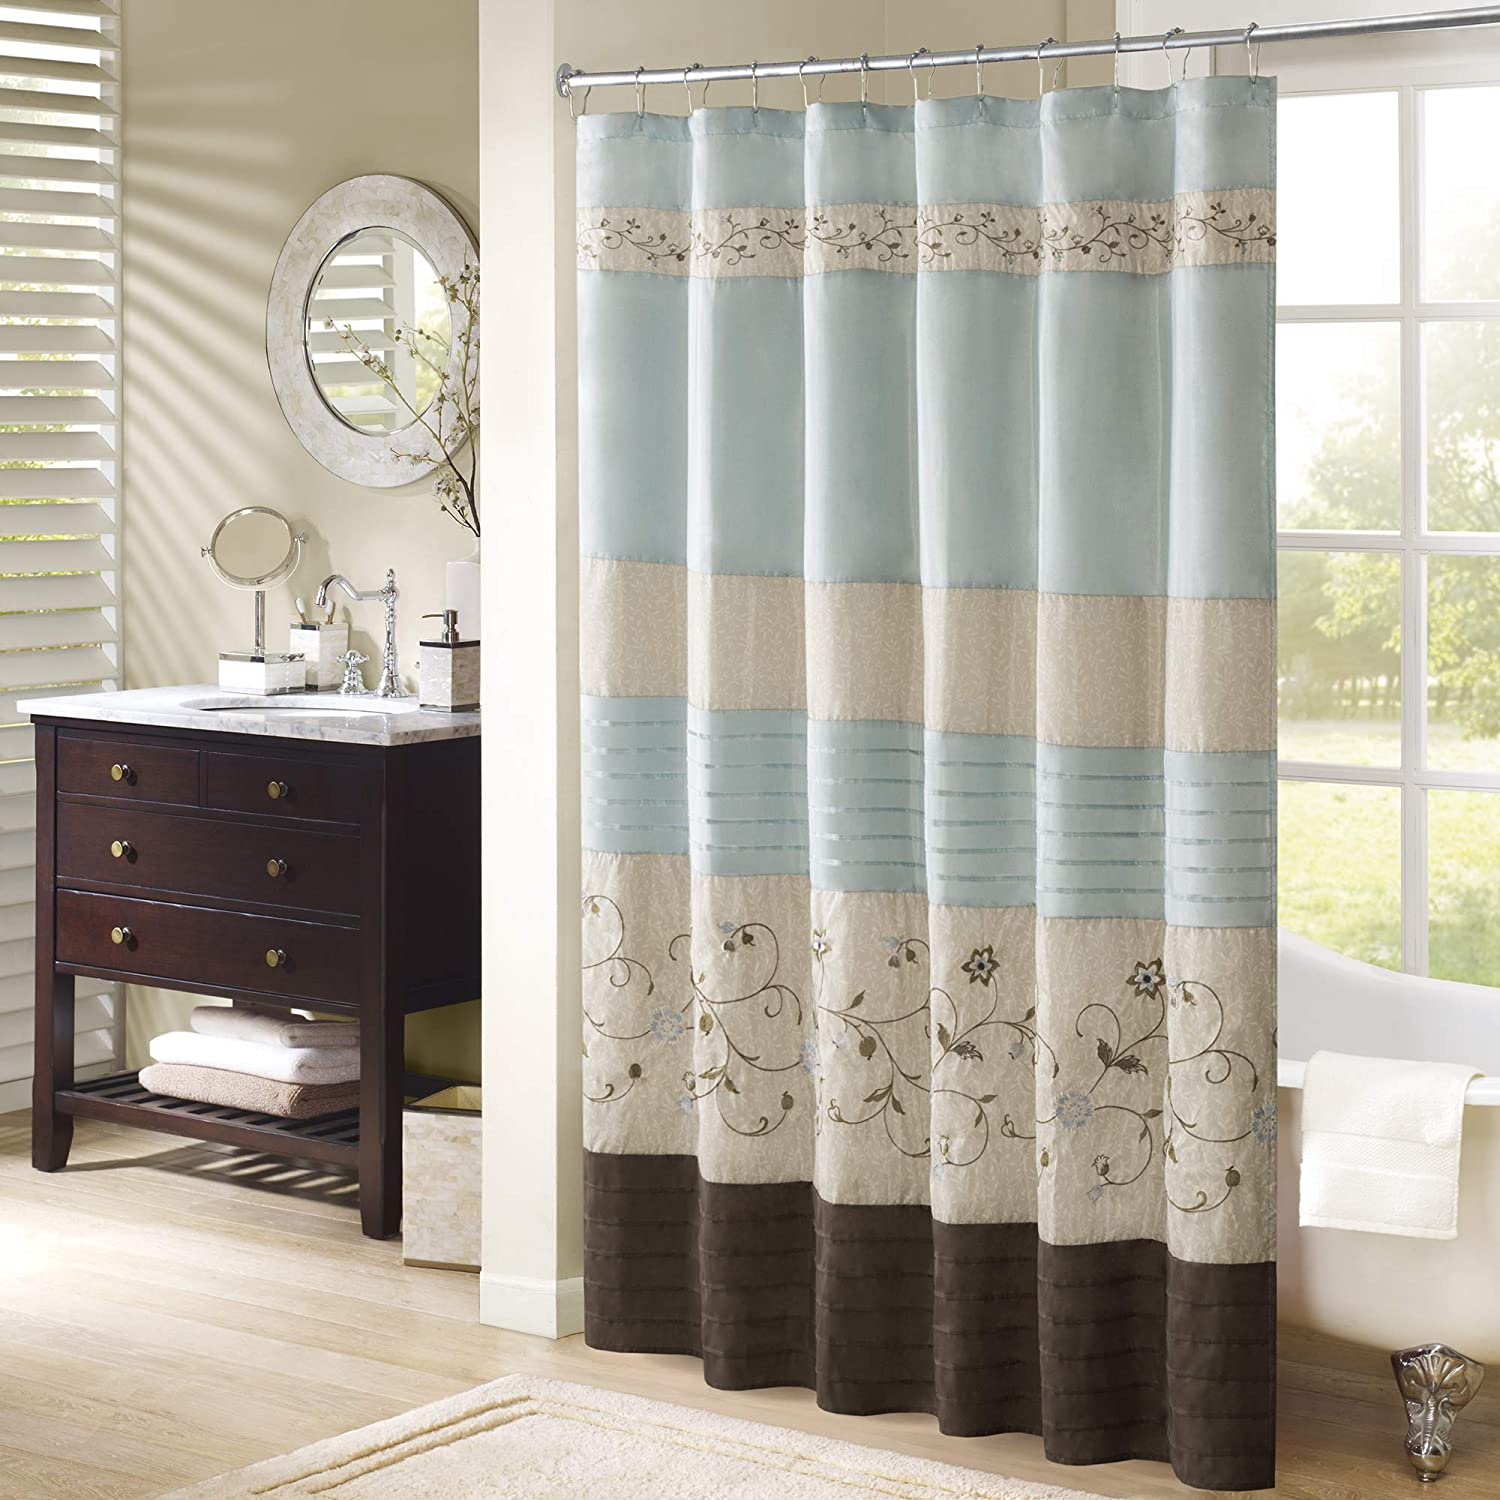 Madison Park Serene Shower Curtain Faux Silk Embroidered Floral Machine Washable Modern Home Bathroom Decorations, 72x72, Blue